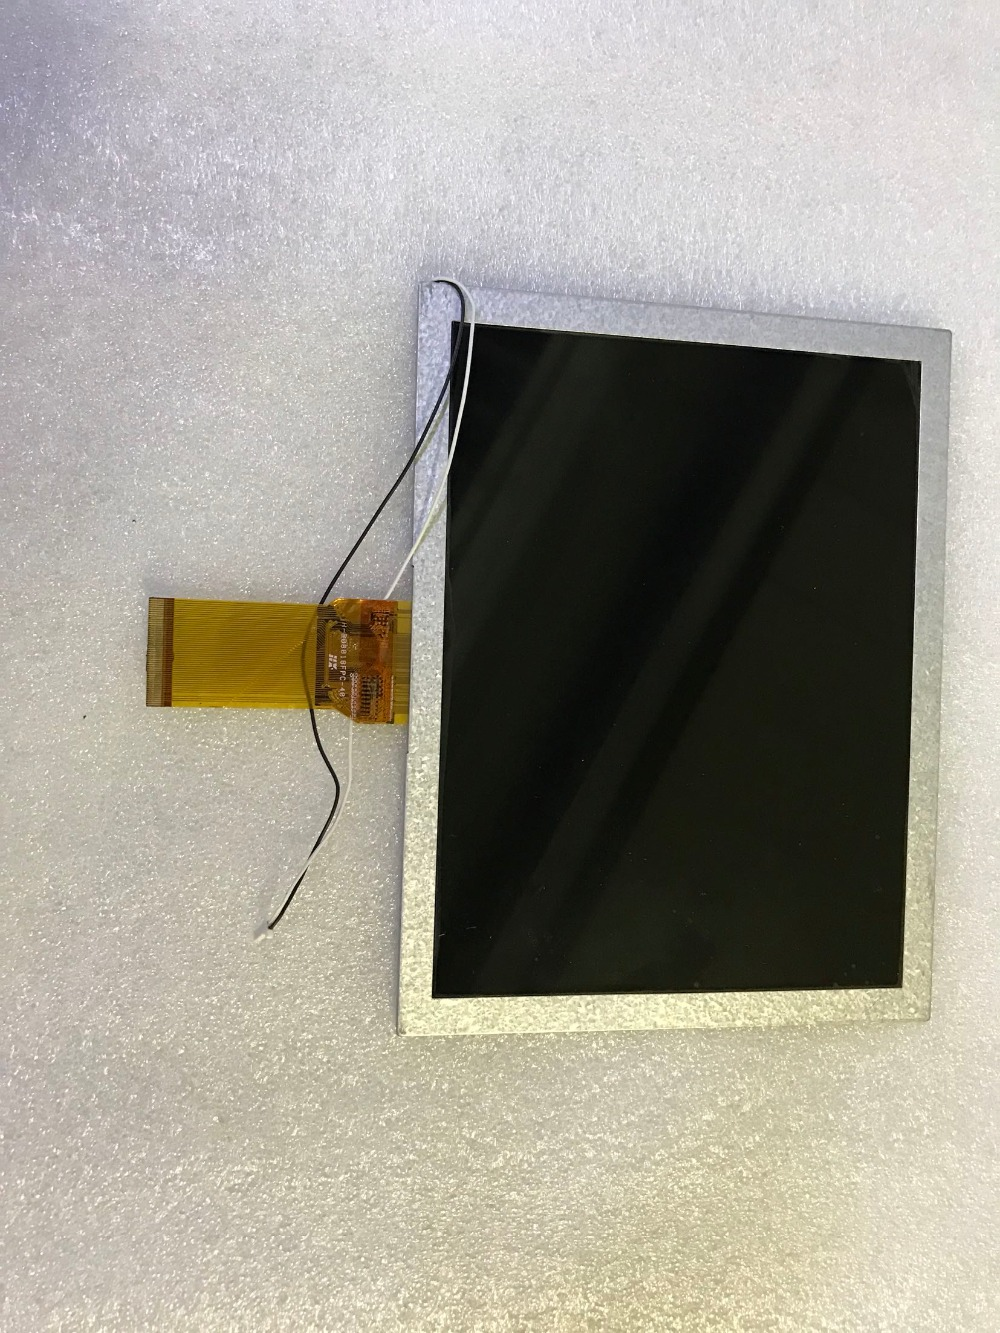 free shipping Original New 8 inch LCD screen original cable Model: H-B08018FPC-40 free shipping original 9 inch lcd screen original cable 730010382 e303460